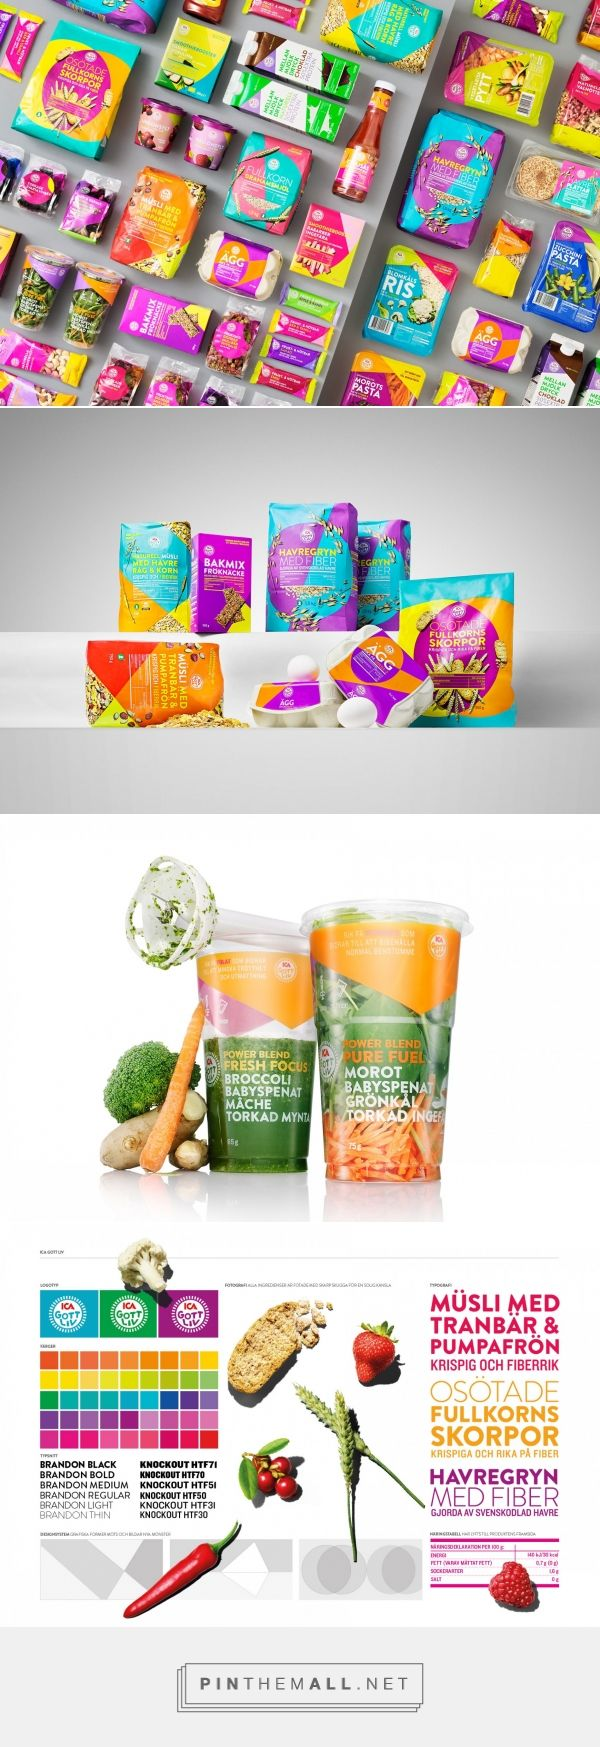 ICA Gott Liv colorful packaging branding via Designkontoret Silver curated by Packaging Diva PD. Who wants to go shopping at IGA now?